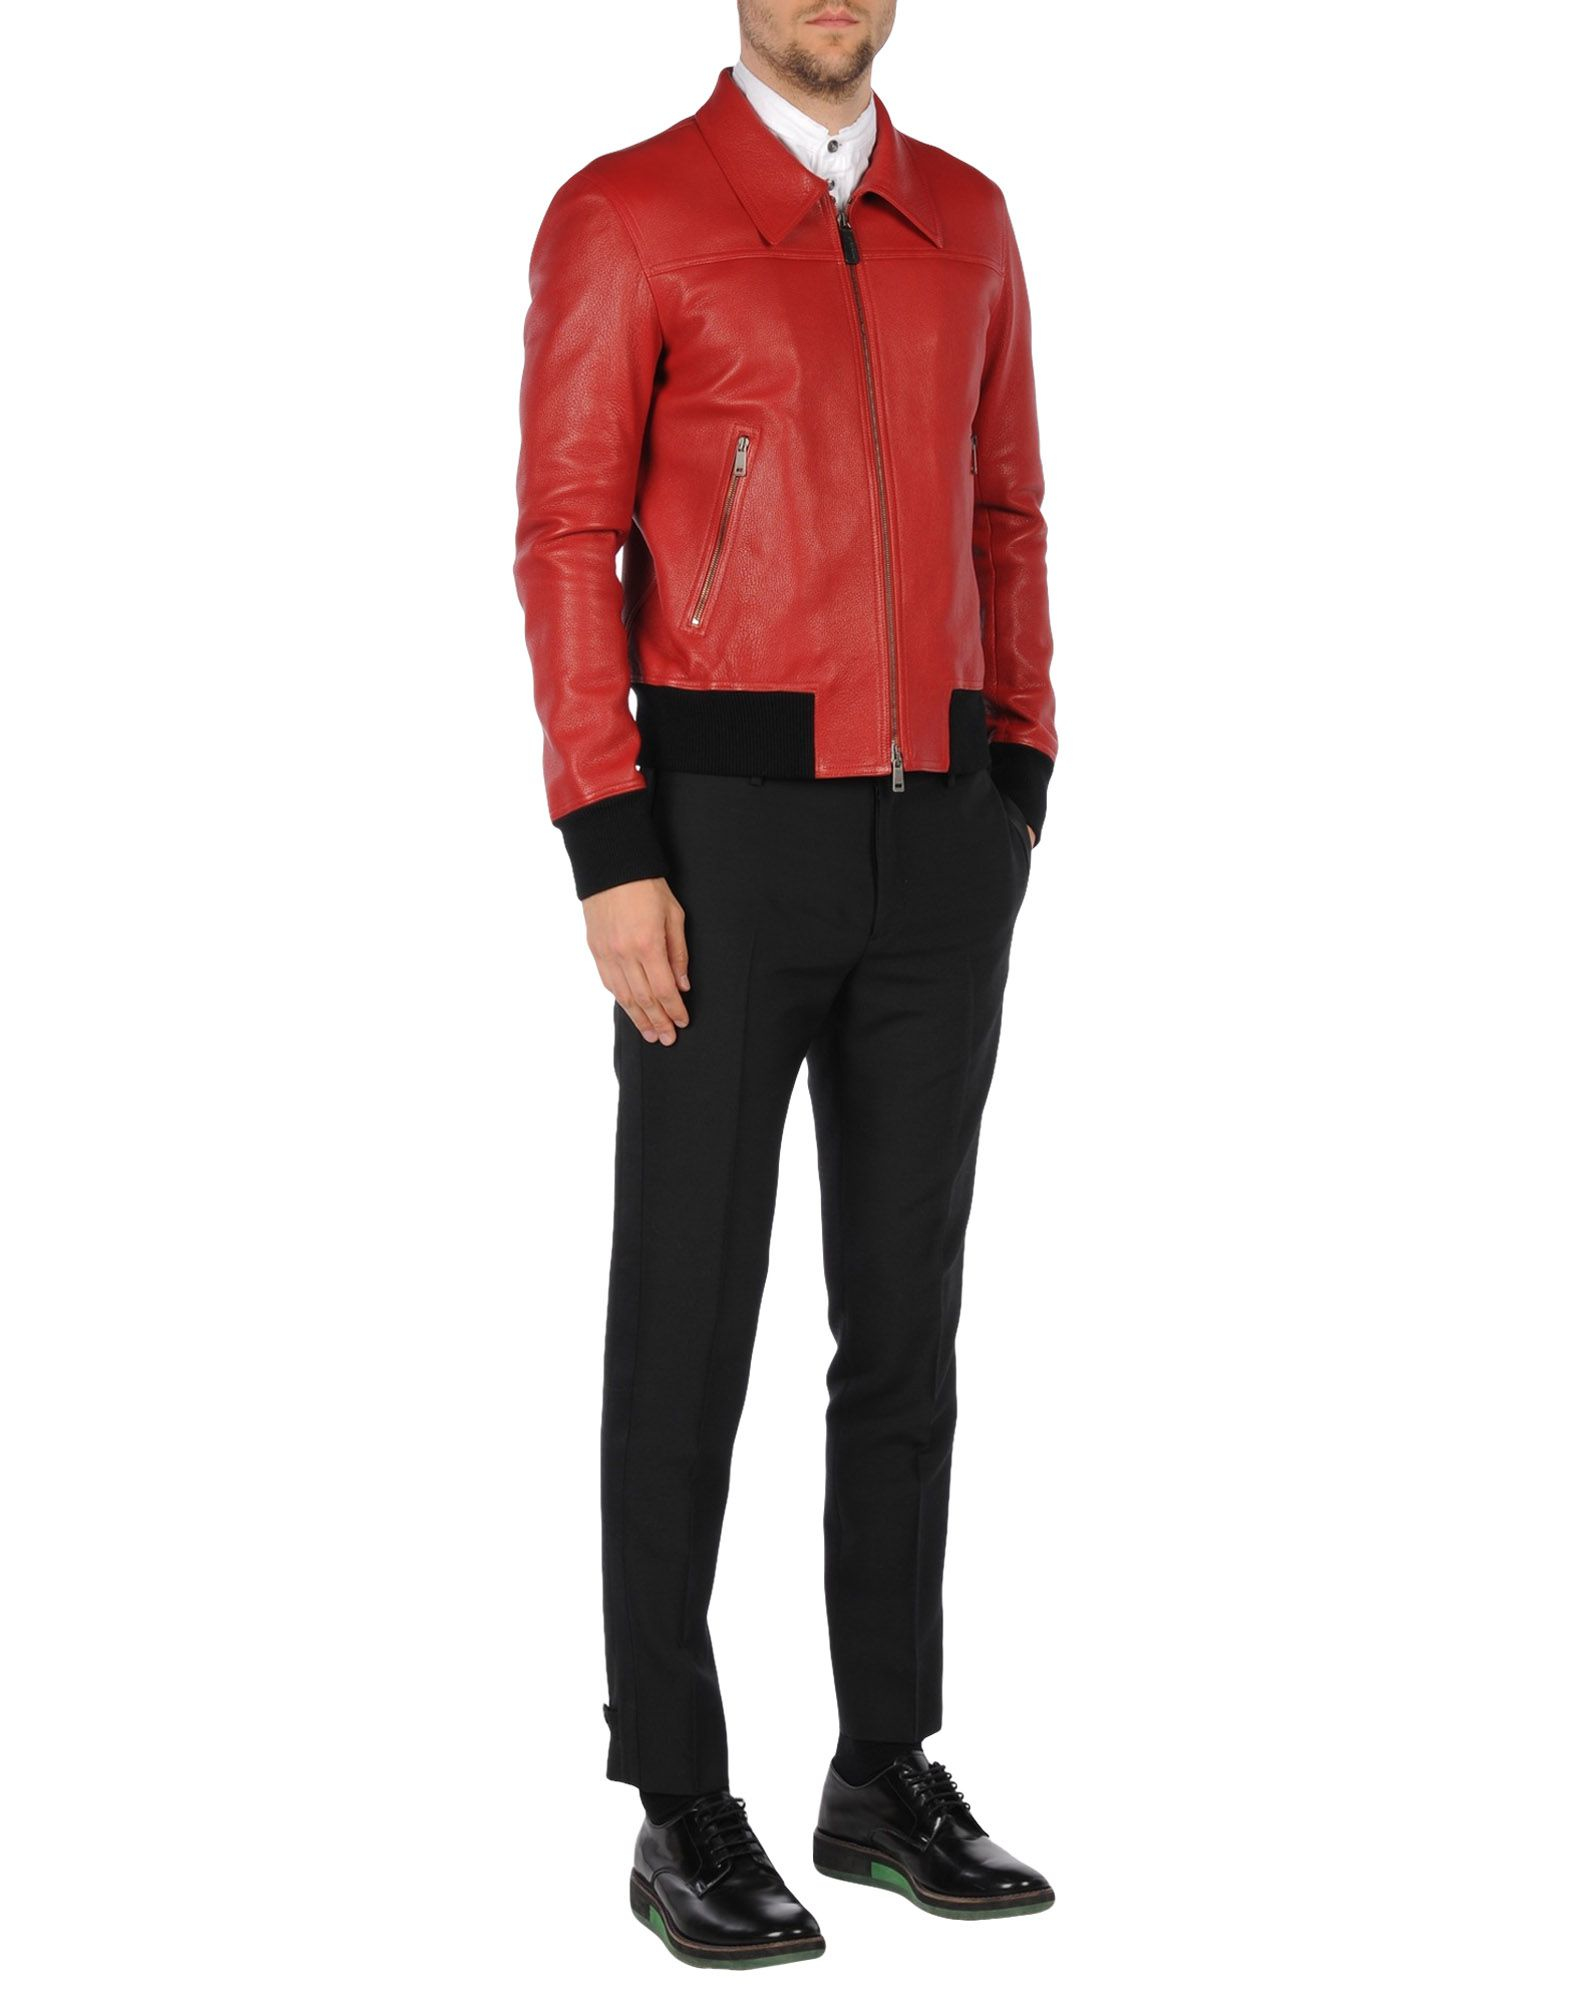 lyst jil sander jacket in red for men. Black Bedroom Furniture Sets. Home Design Ideas